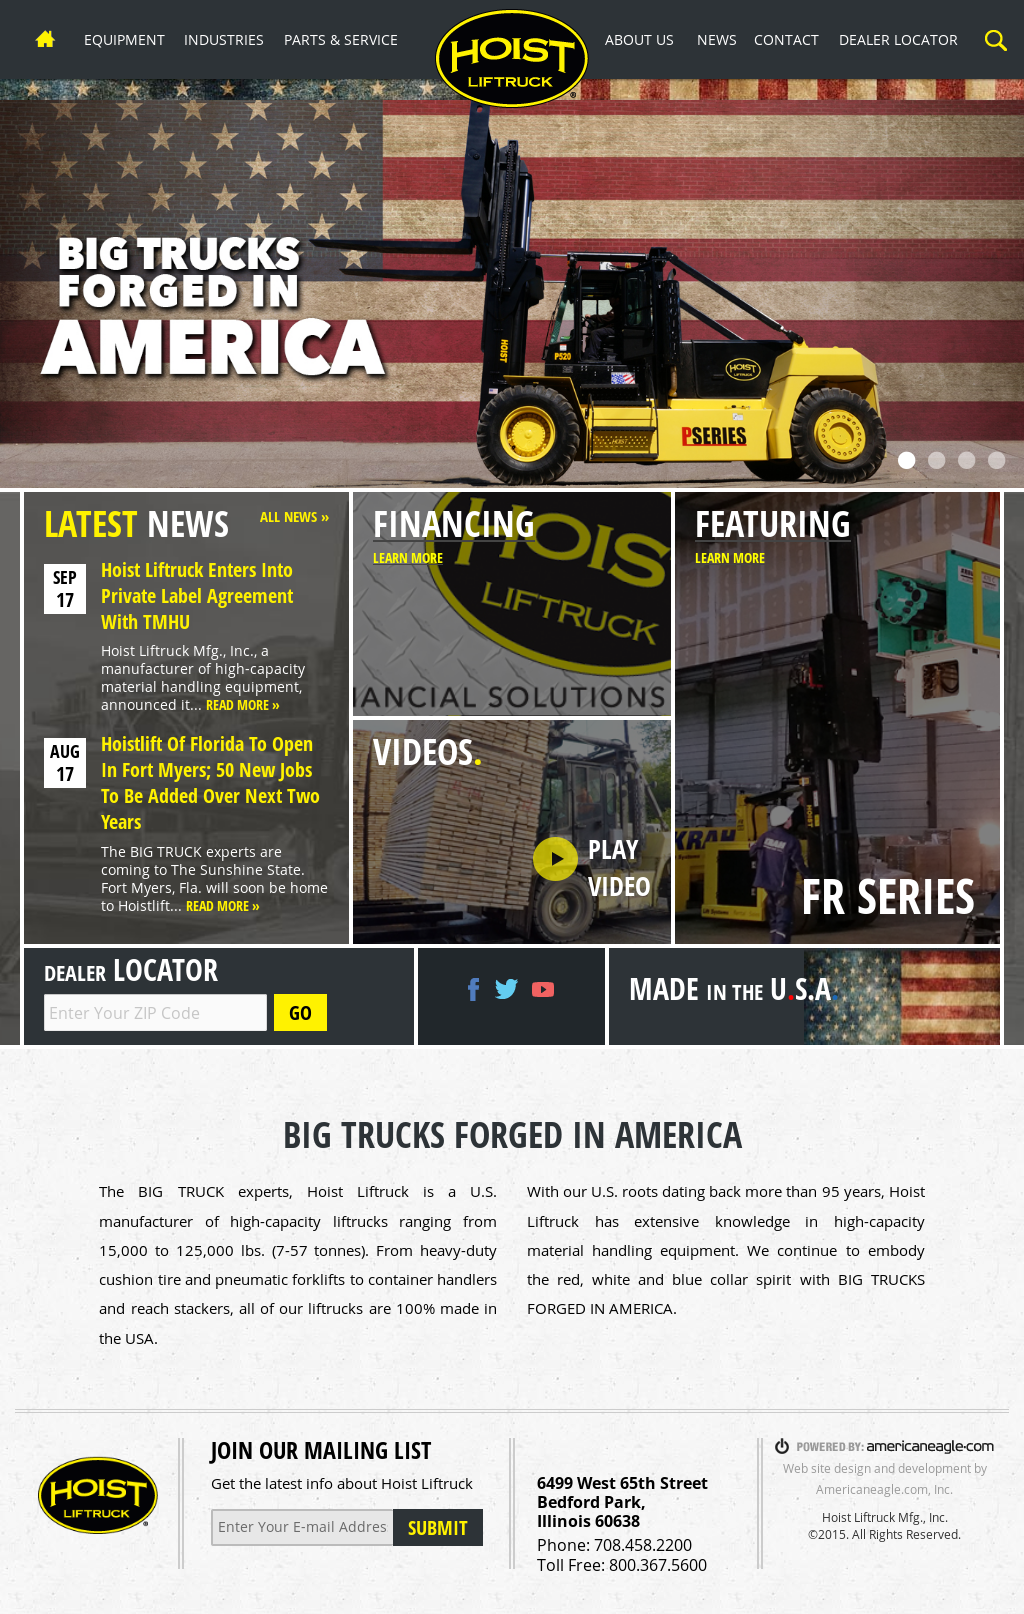 Hoist Liftruck Competitors, Revenue and Employees - Owler